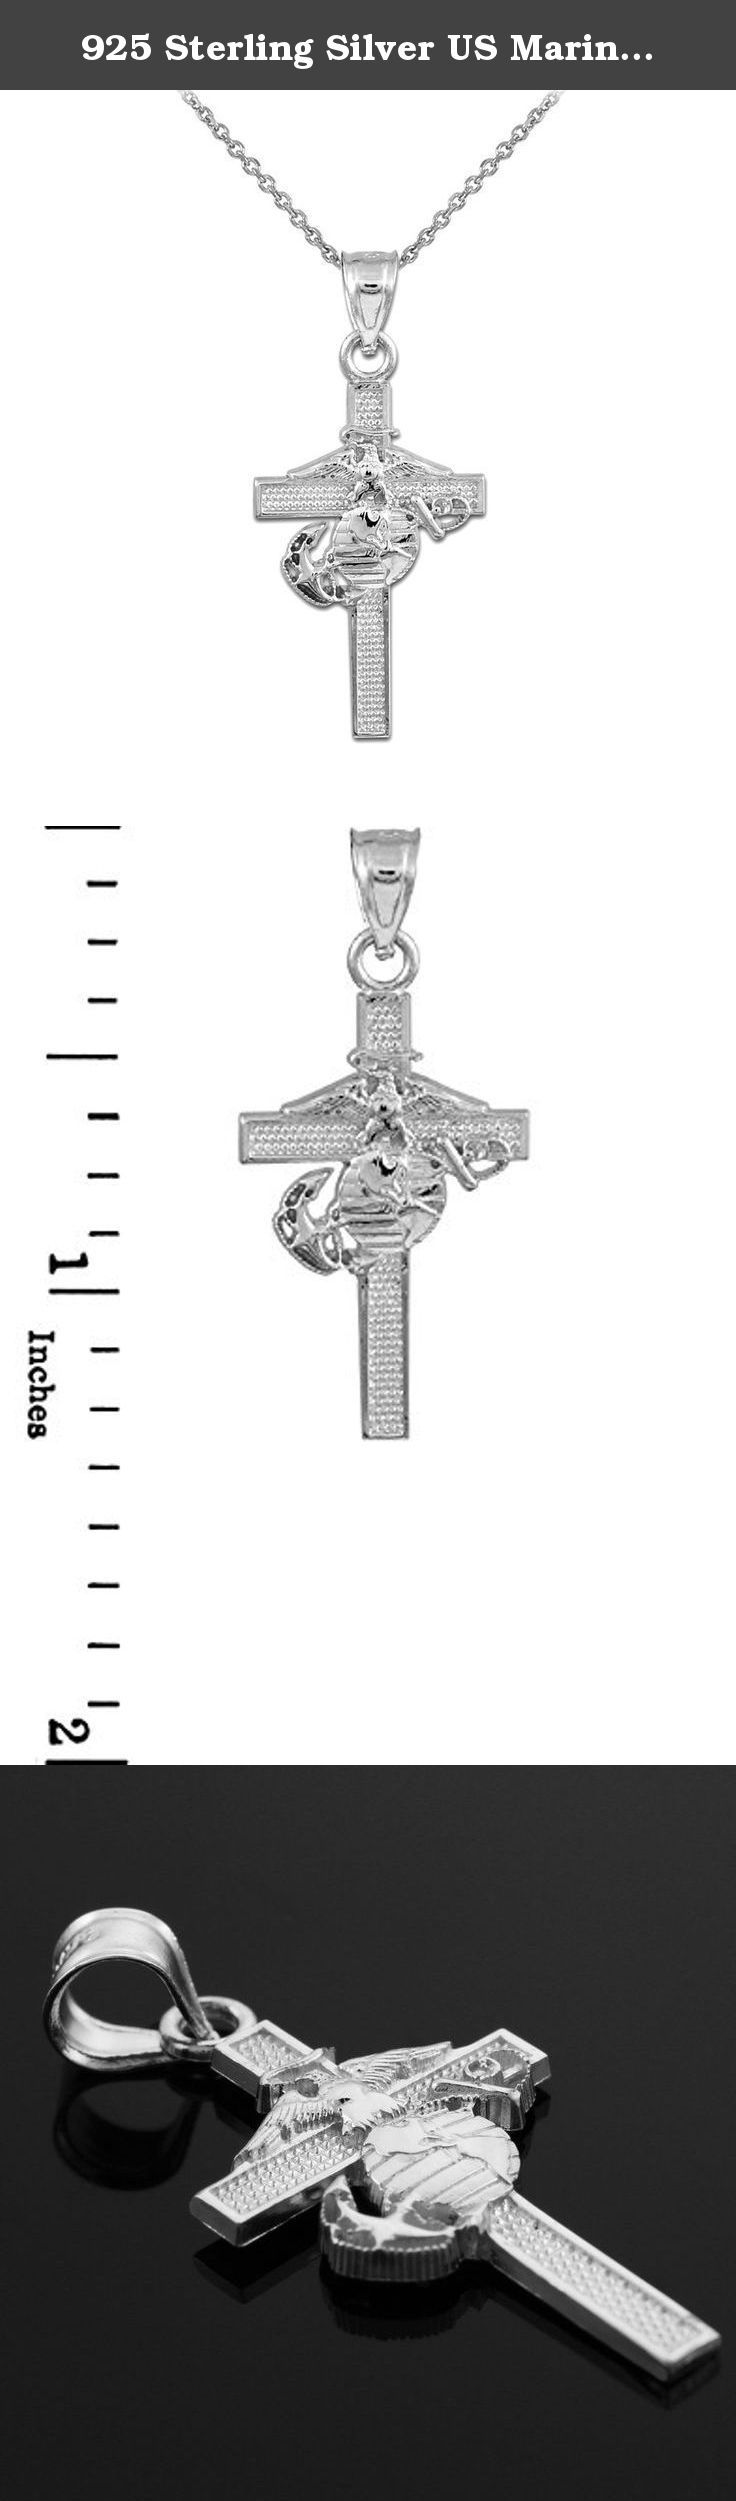 "925 Sterling Silver US Marine Corps Medium Military Cross Pendant Necklace, 16"". Exhibit that admirable patriot in you with this splendid 925 sterling silver cross with the US Marine Corps emblem pendant necklace. This piece is intricately and designed for America's brave. Its delicate design showcases the American Eagle, Globe and Anchor--all 3 symbols, together, represent the Marine Corps' commitment to defend our country by land, by air, or by sea. ."